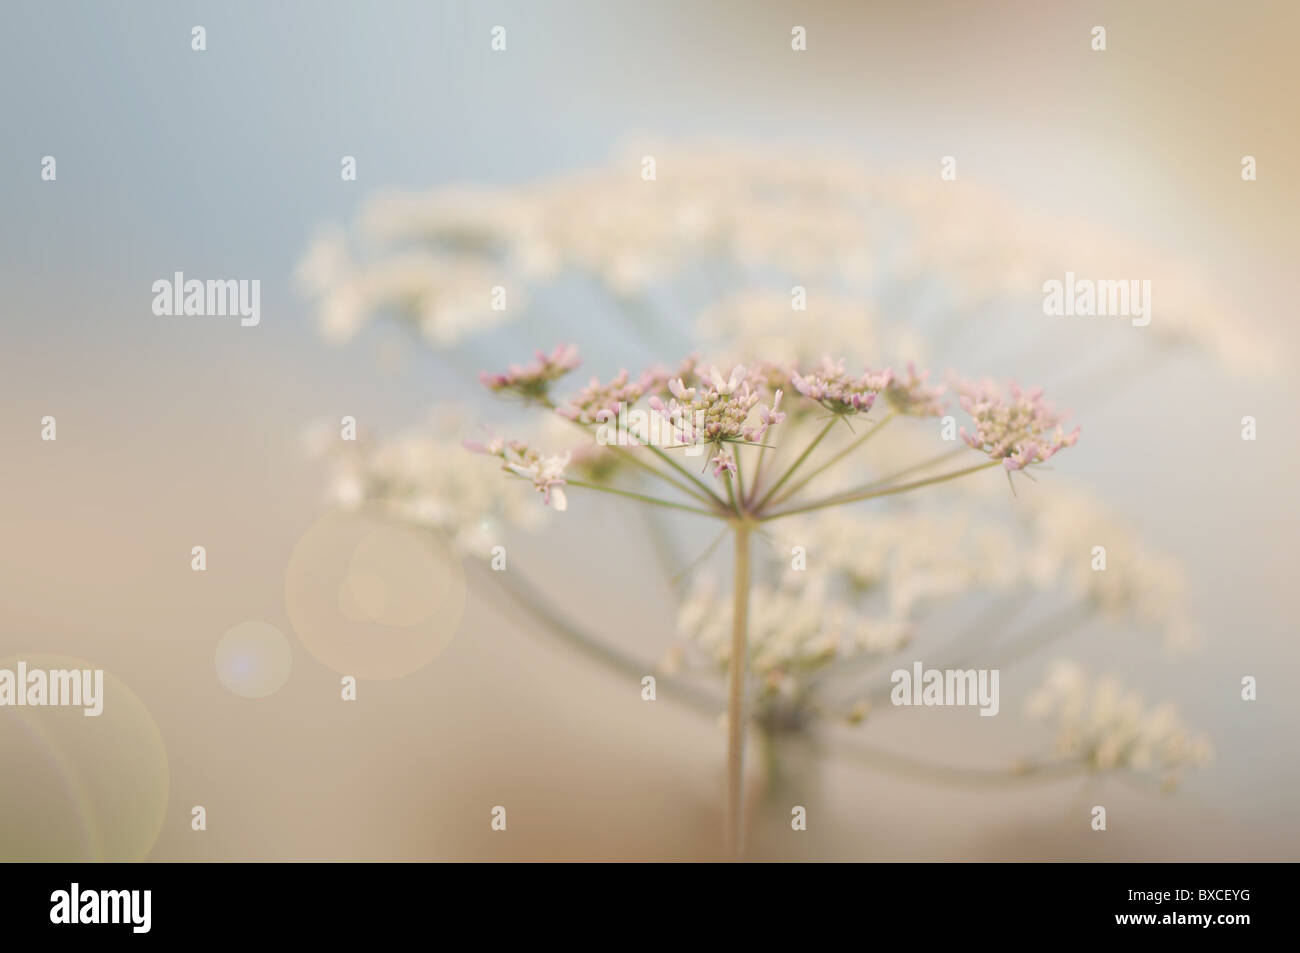 Anthriscus sylvestris - Cow Parsley or Queen Anne's lace  flowers with Sun Flare / Lens Flare - Stock Image